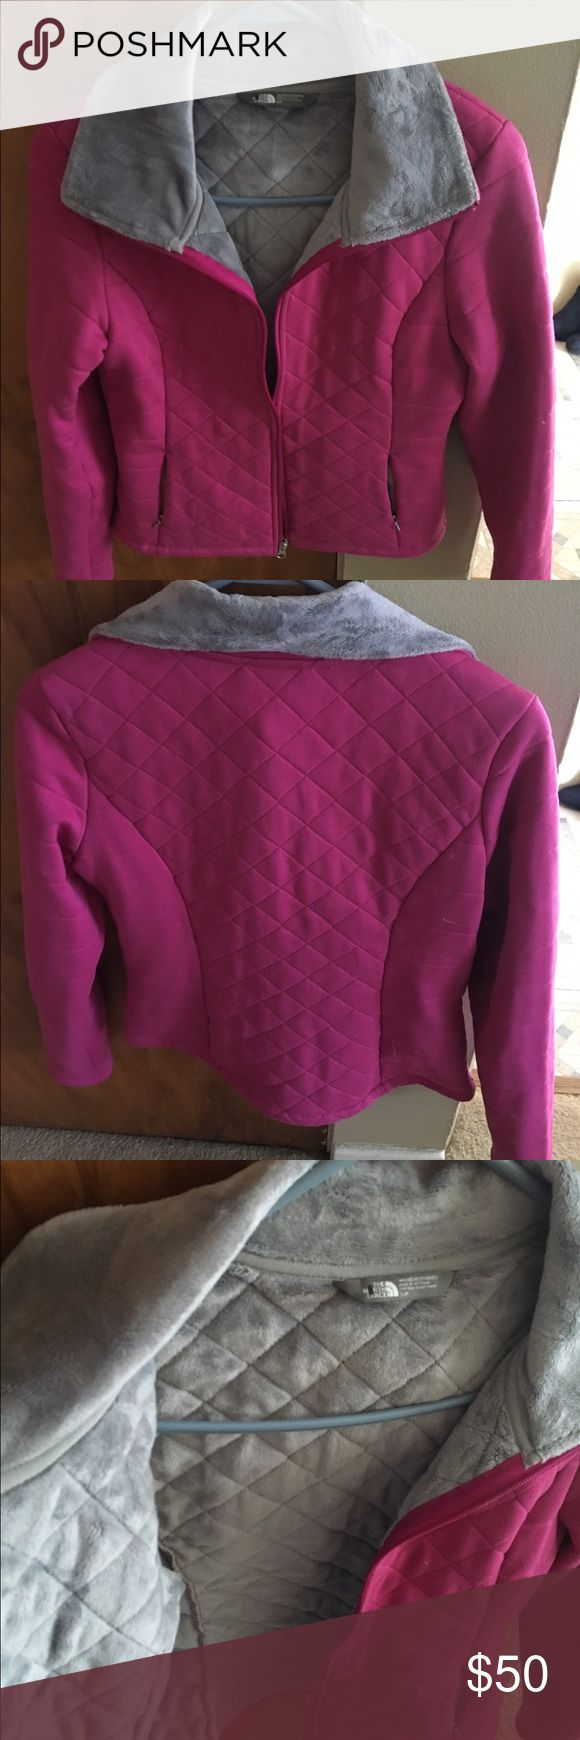 North Face jacket Magenta and Gray.. Size Small.. Never Used its too small. Got at North Face outlet. No tags North Face Jackets & Coats